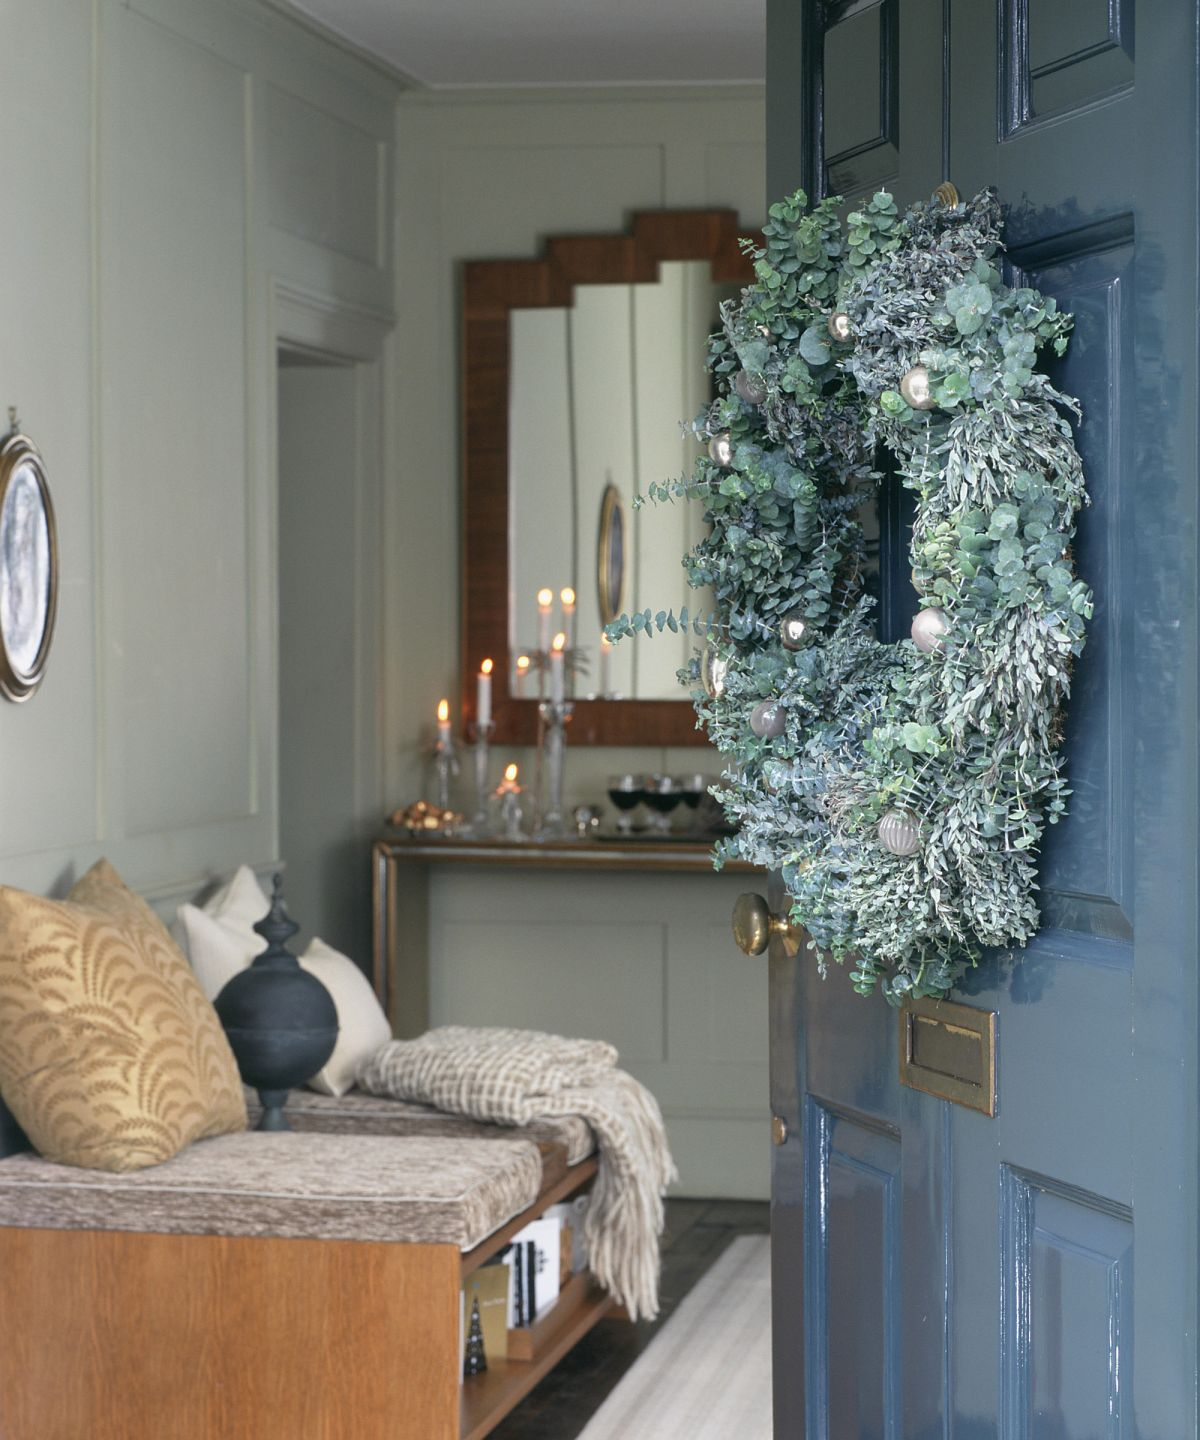 Christmas trends – 7 ways we're decorating and spending Christmas in 2020